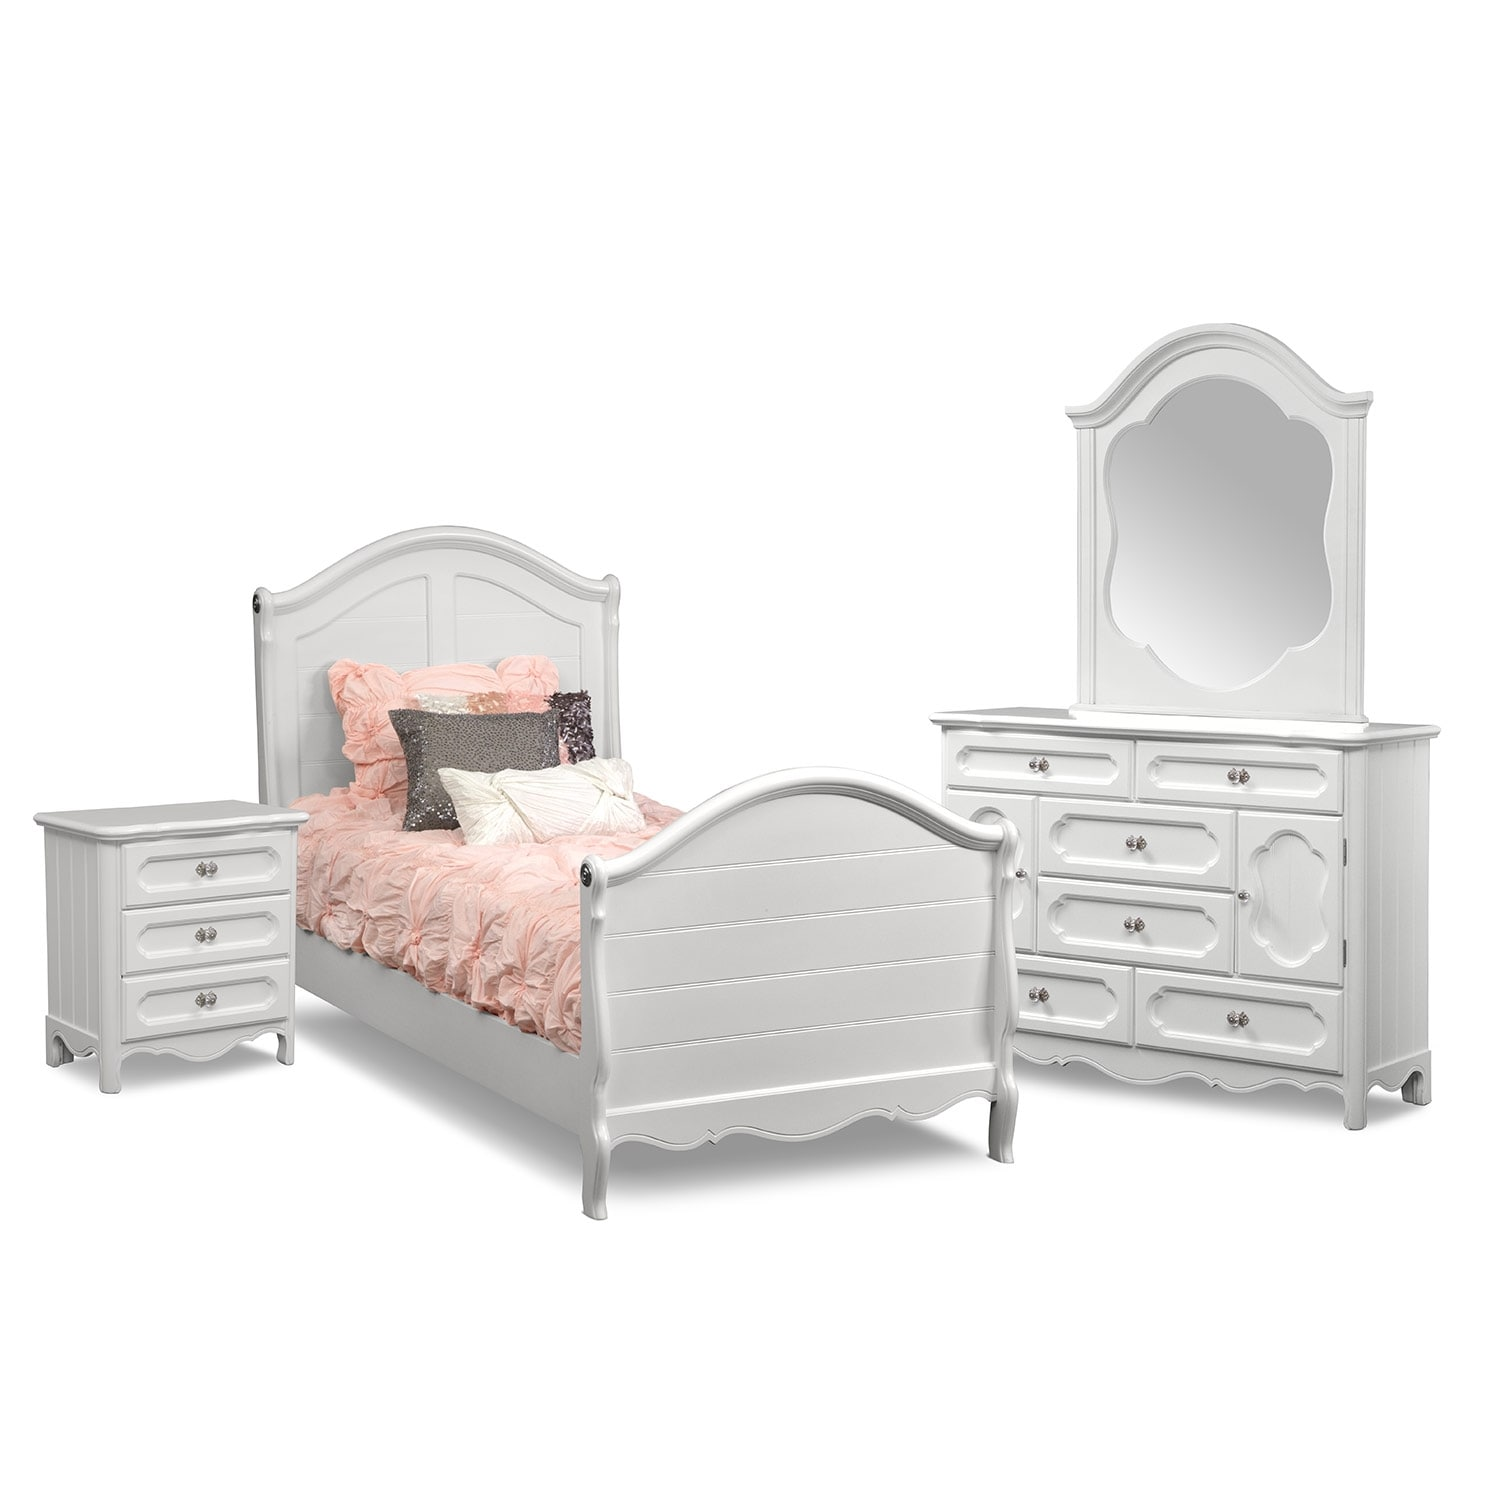 Carly 6 piece full bedroom set white value city furniture for Kids white bedroom furniture